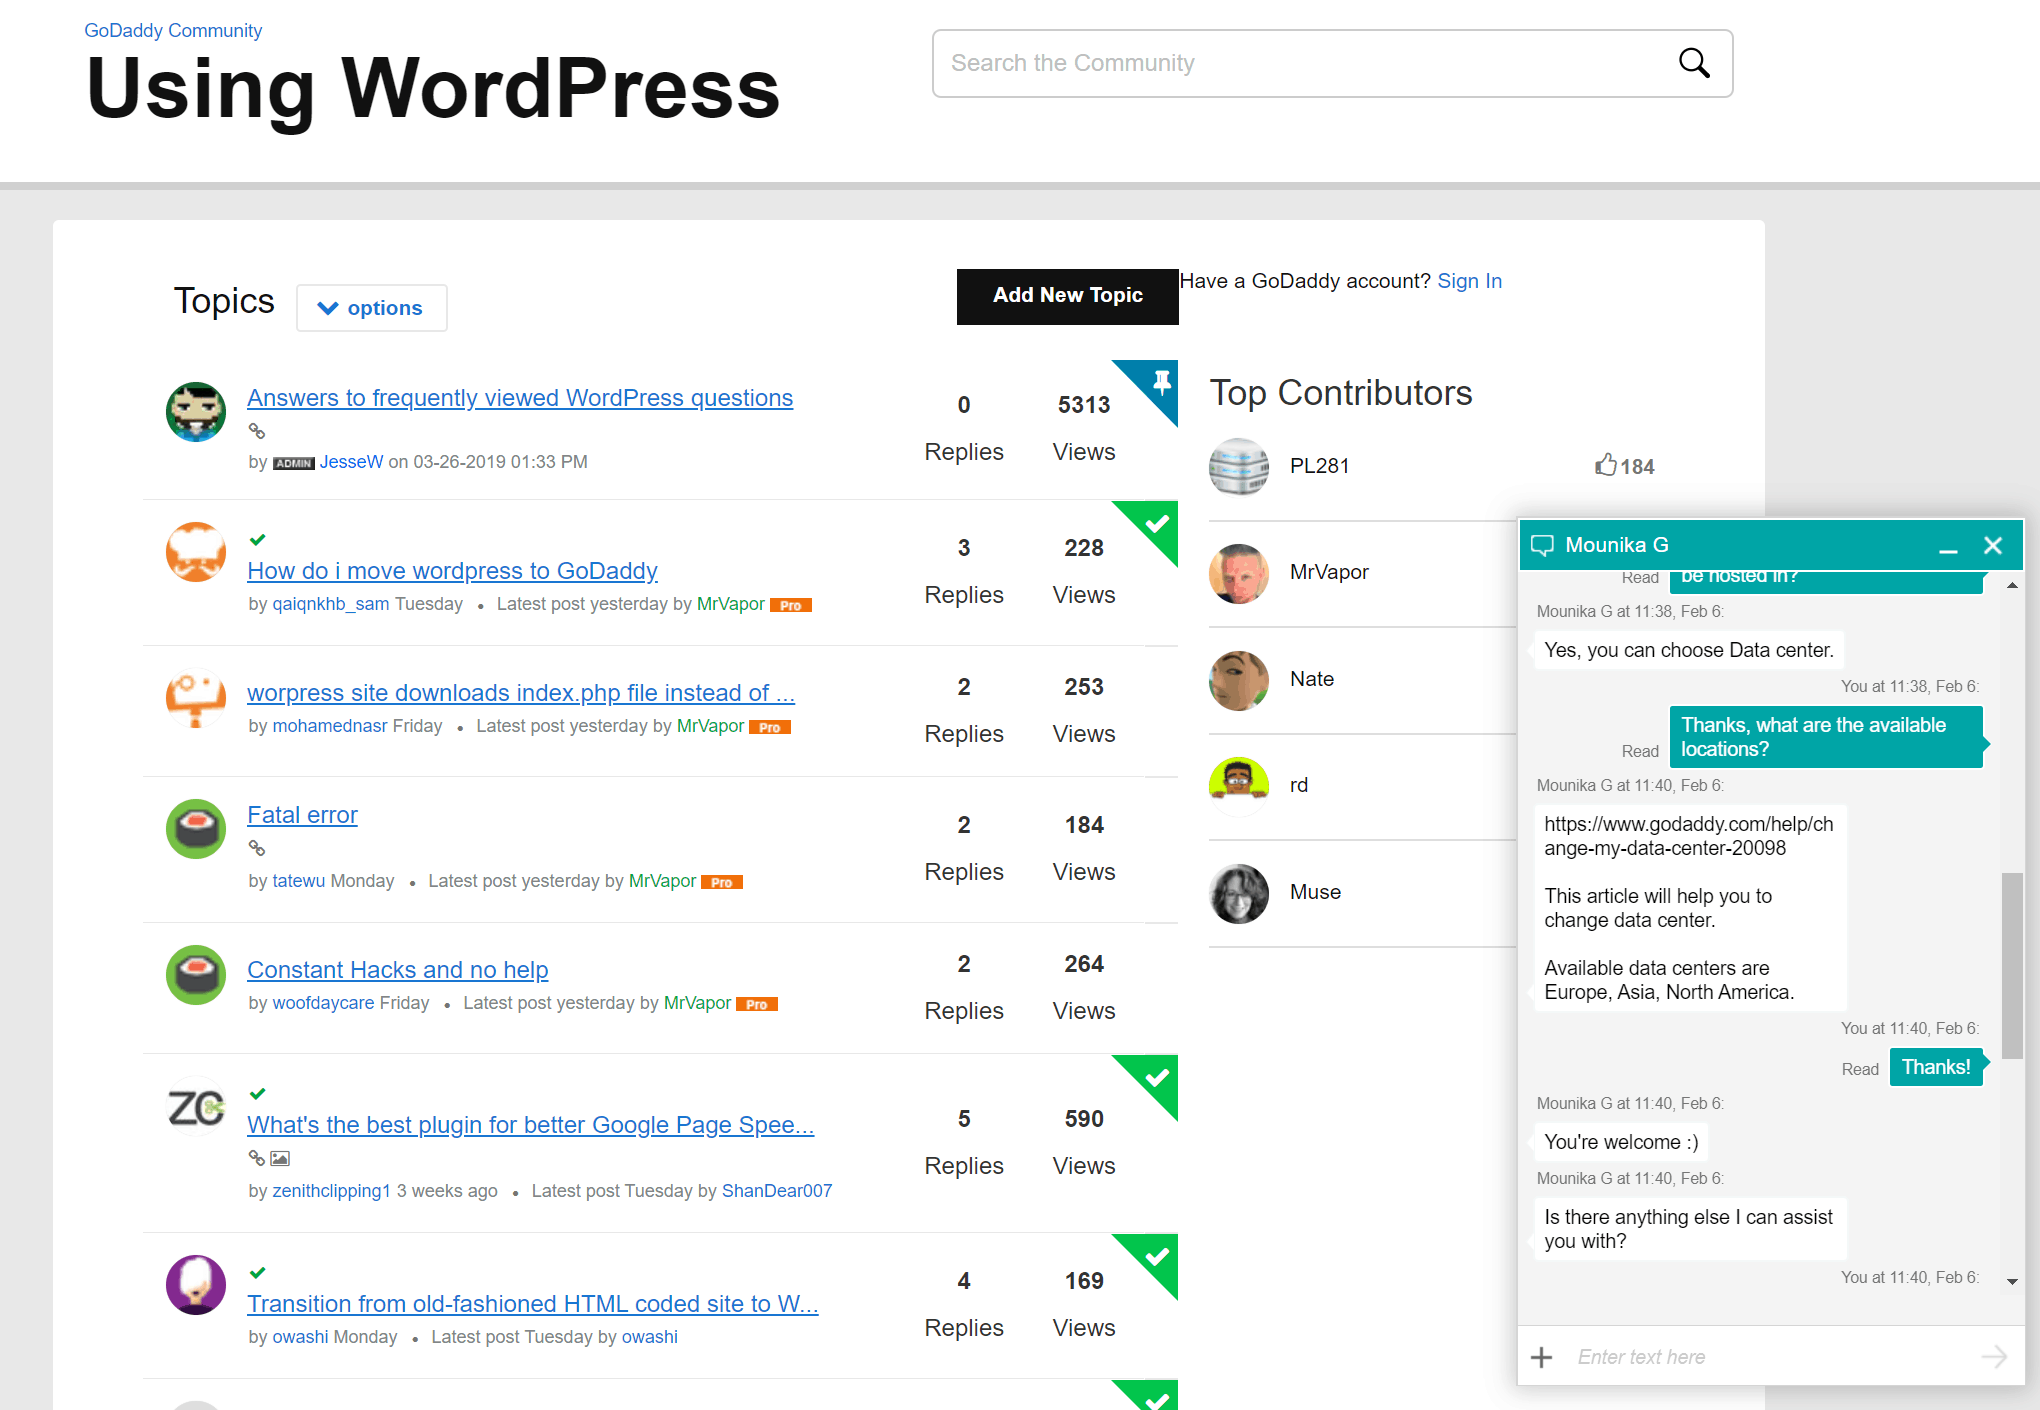 GoDaddy's WordPress forum, and my support chat